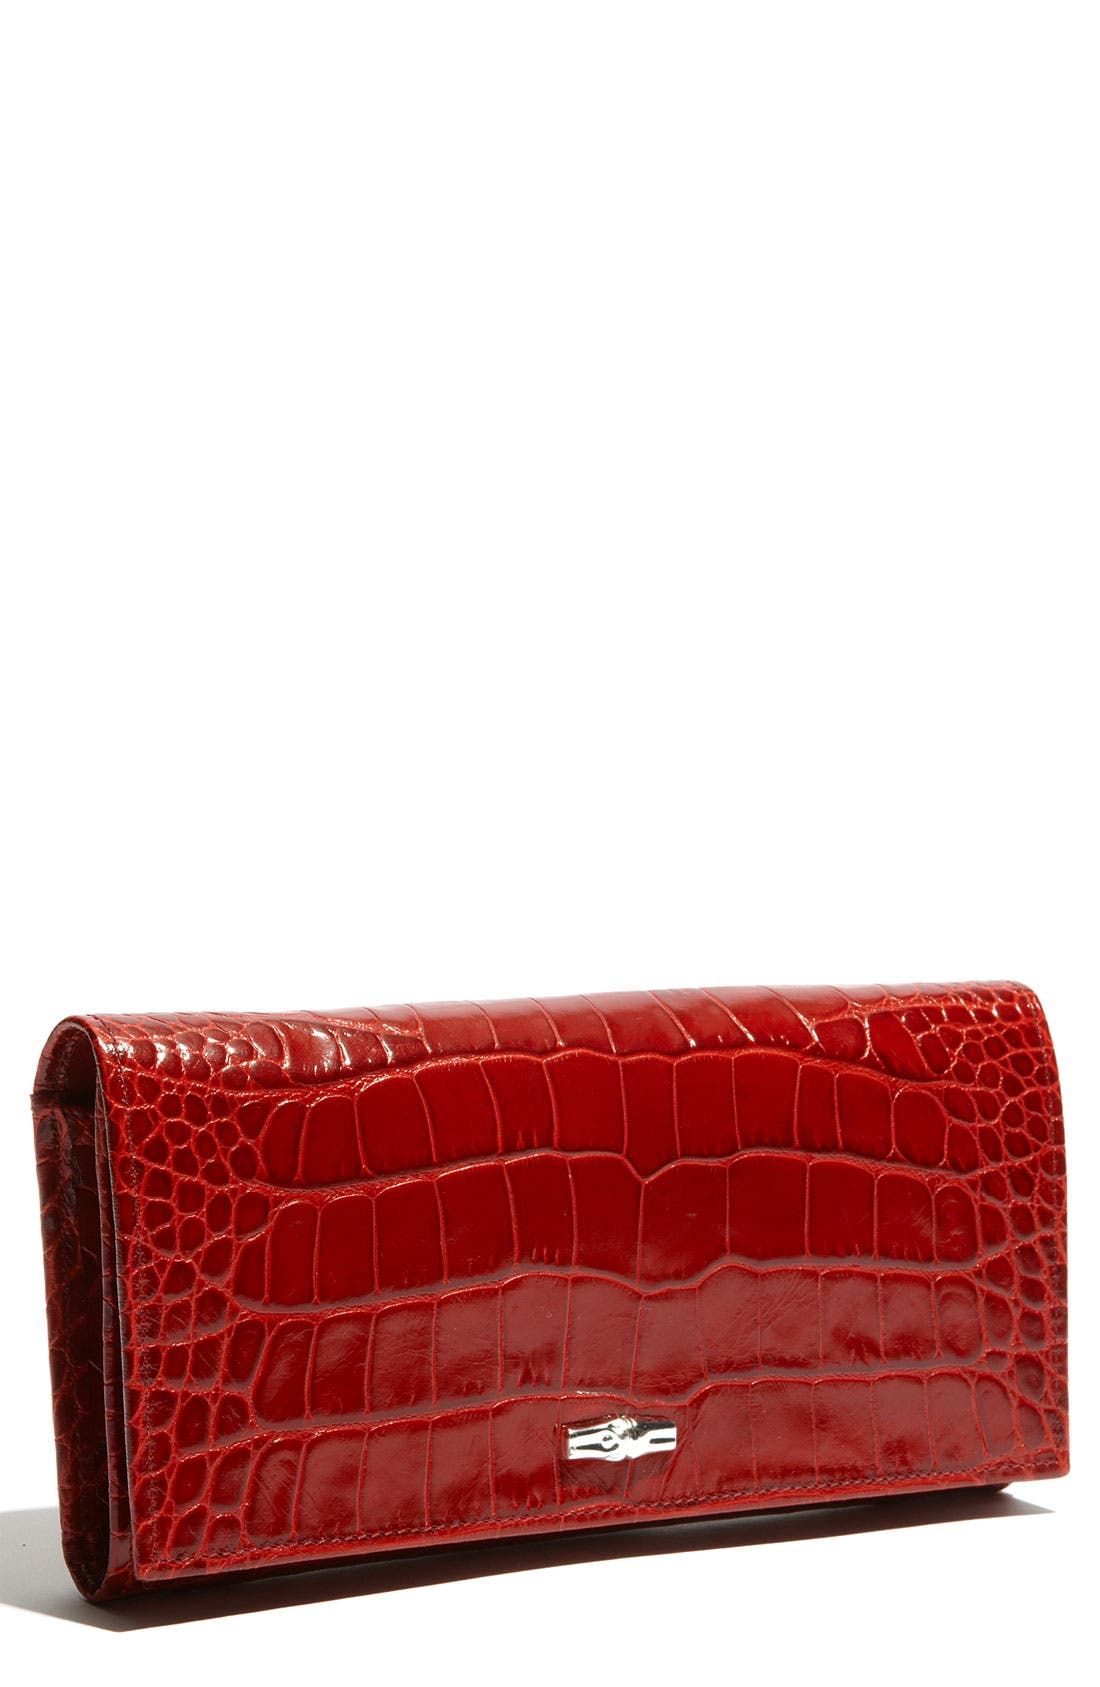 Main Image - Longchamp 'Roseau' Croc Embossed Wallet